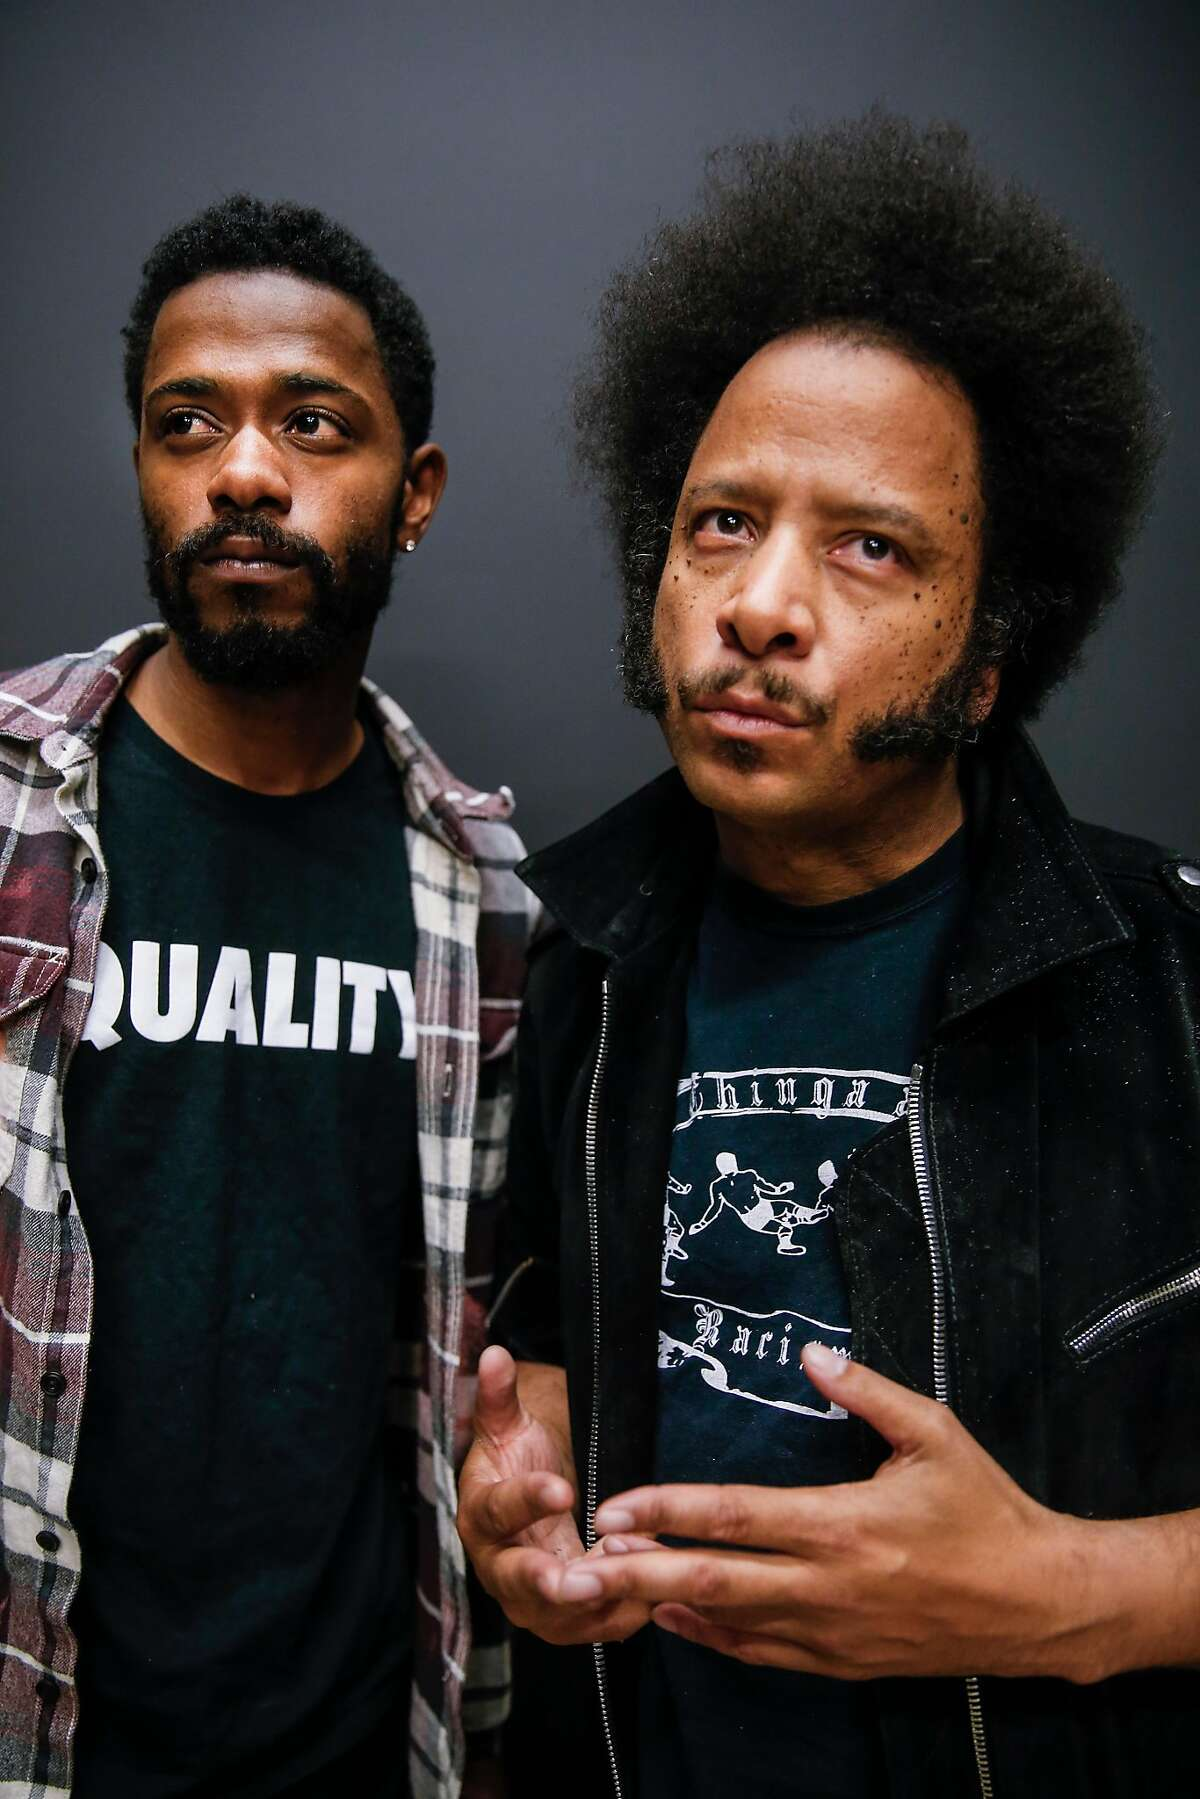 """Lakeith Stanfield, star of the film, """"Sorry to Bother You,"""" and director Boots Riley are seen on Tuesday, June 26, 2018 in San Francisco, Calif."""